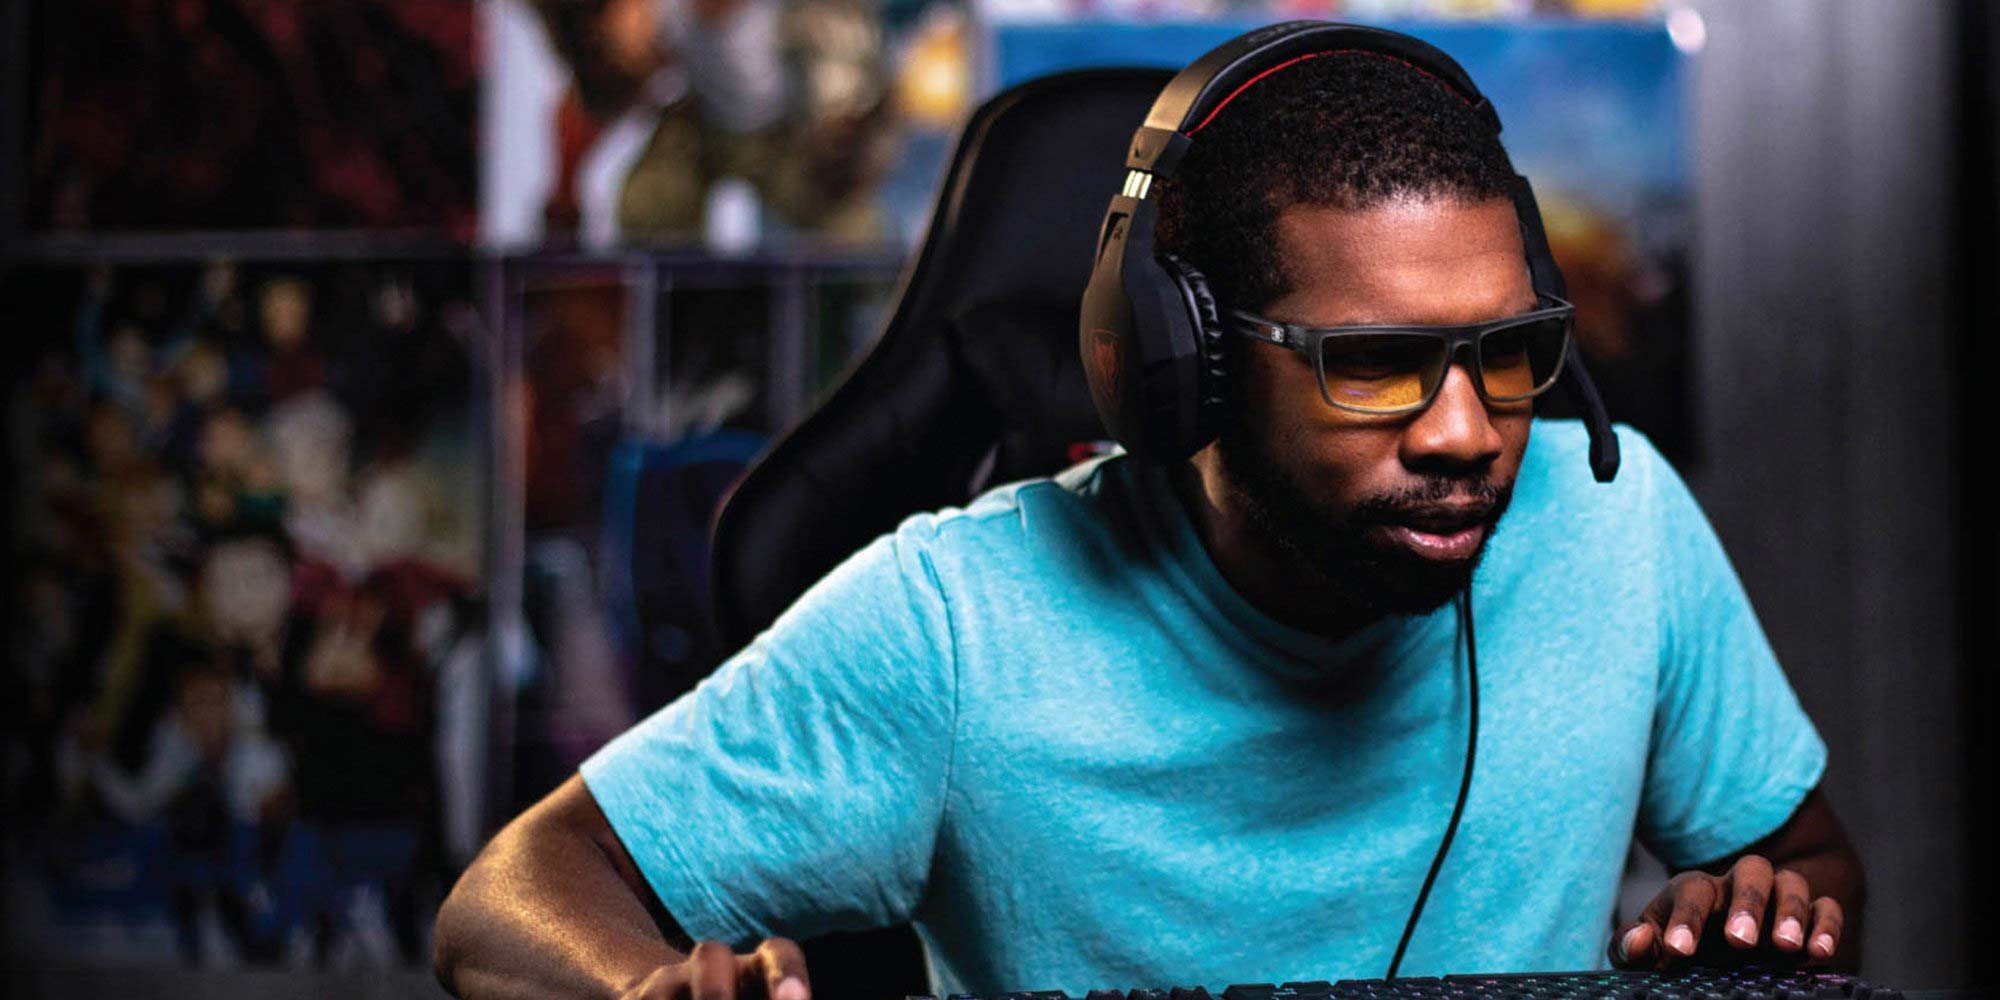 gn gaming valve smoke amber optimized - Comfortable Glasses For Serious Gamers